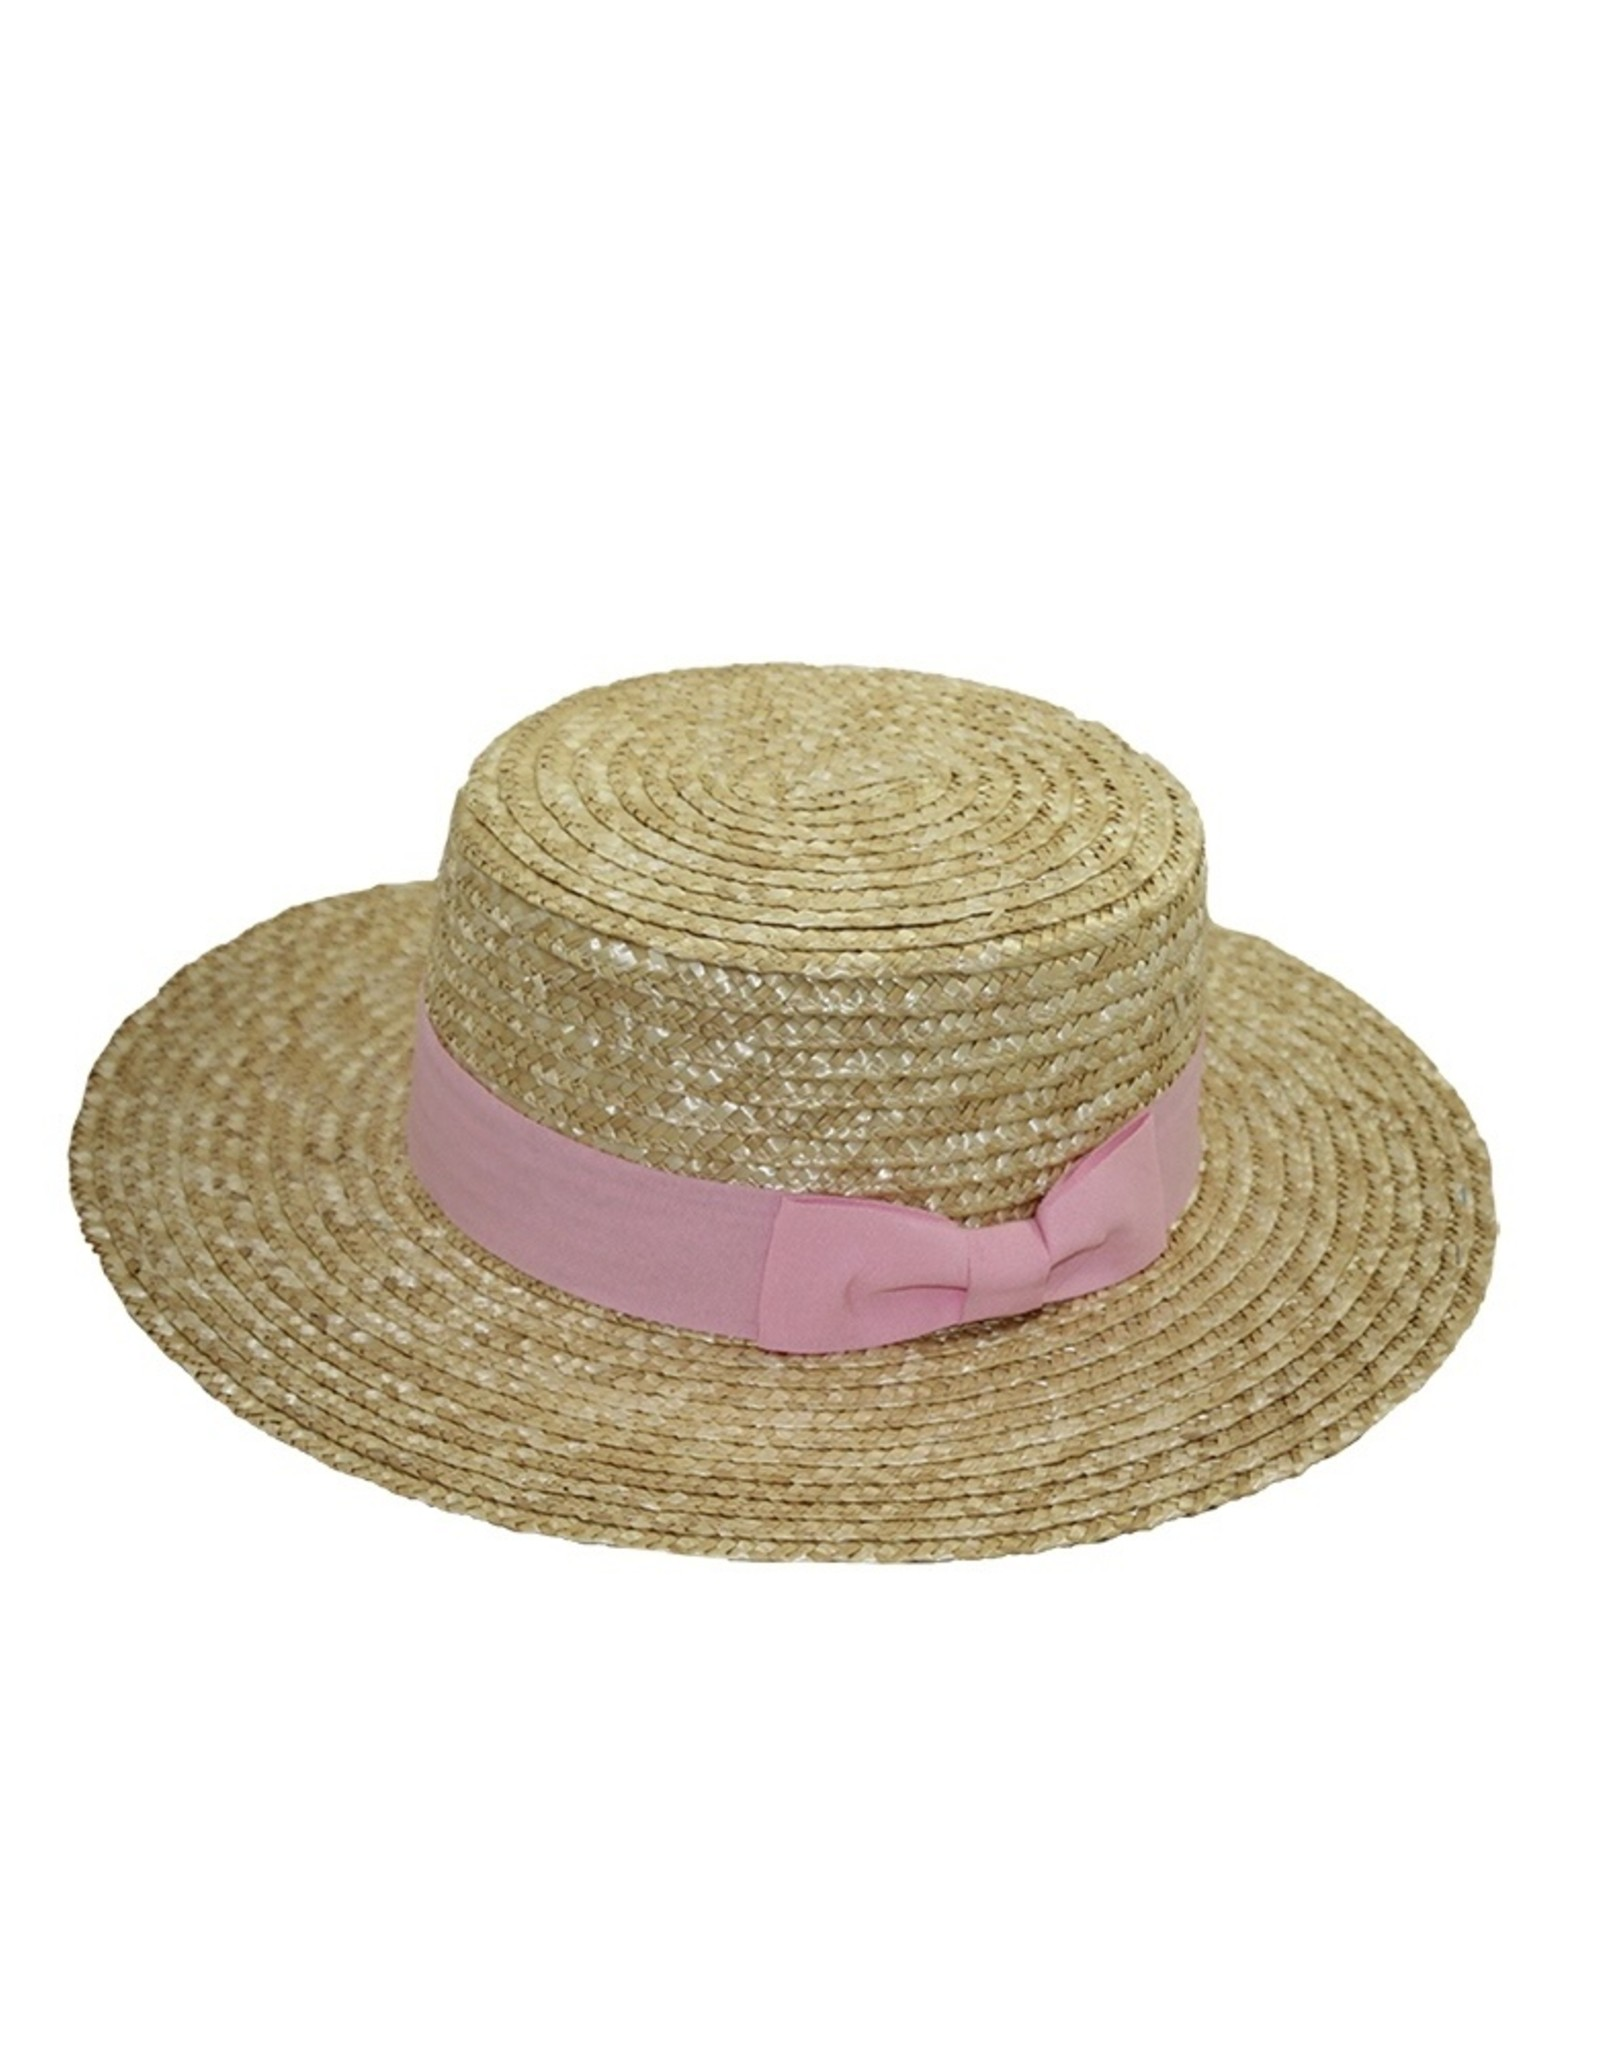 Straw Hat with Pink Bow